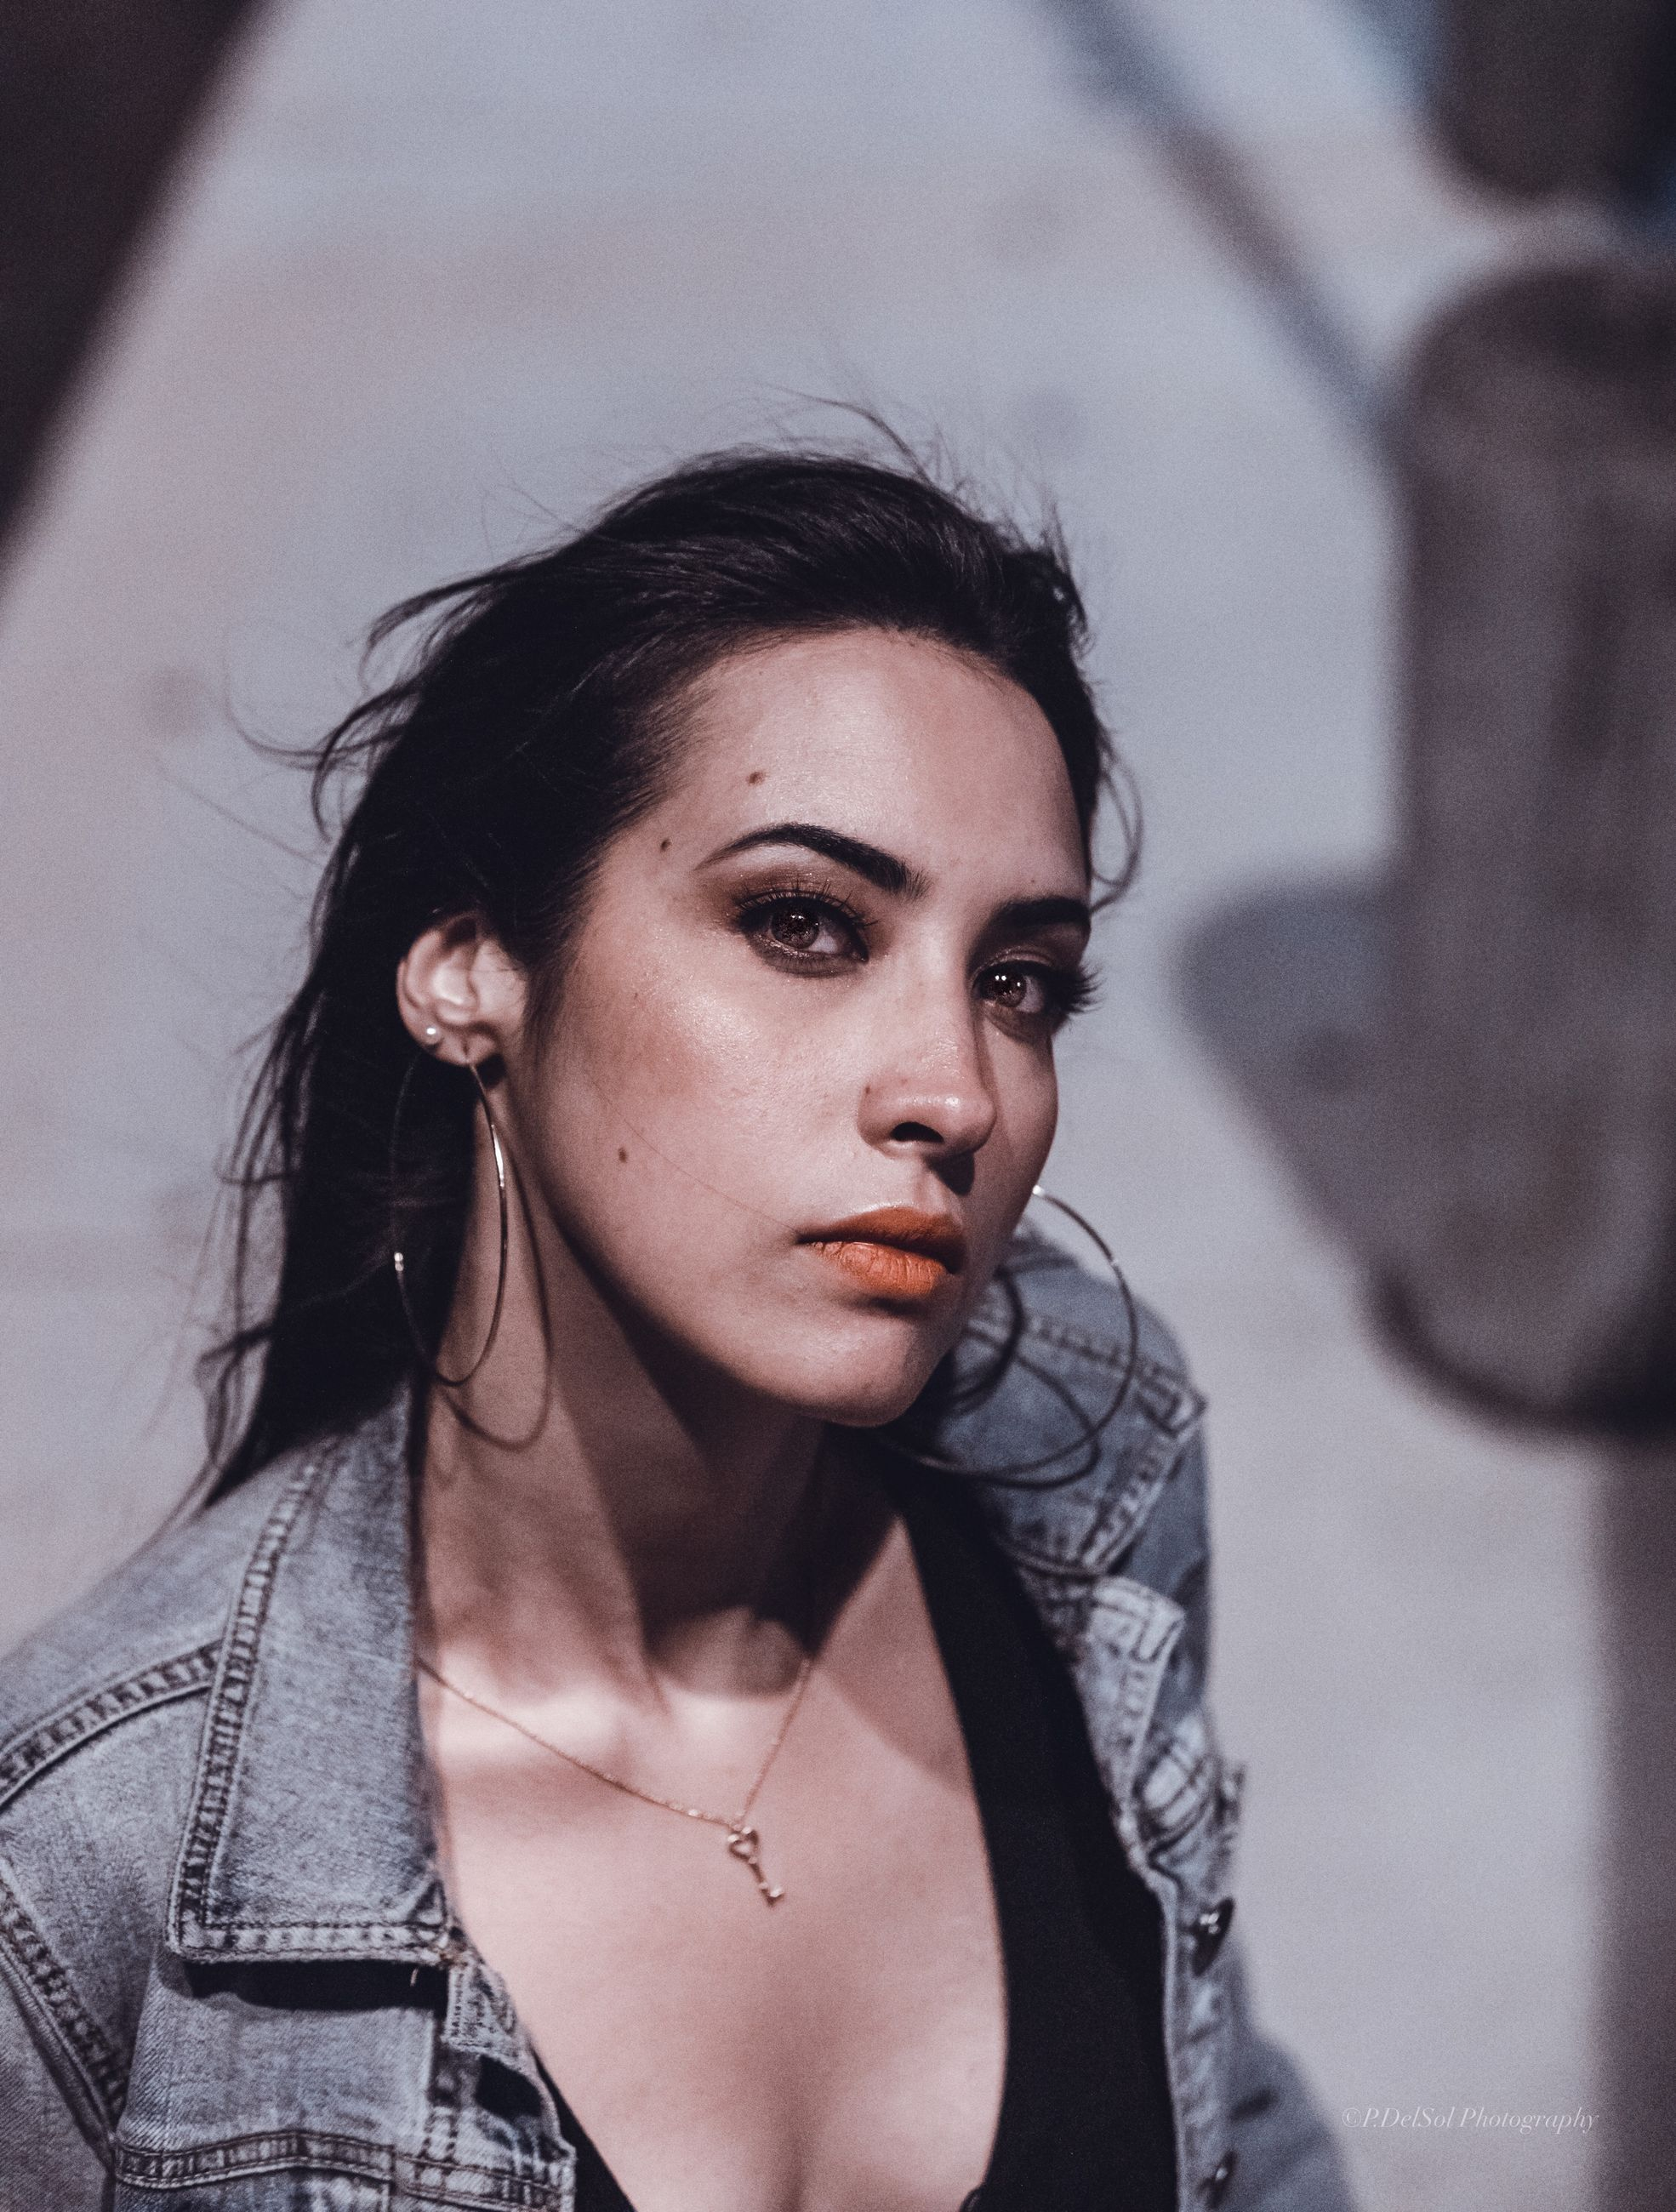 young adult, one person, portrait, young women, lifestyles, front view, real people, leisure activity, beauty, headshot, focus on foreground, looking at camera, casual clothing, indoors, hair, beautiful woman, adult, women, hairstyle, contemplation, leather